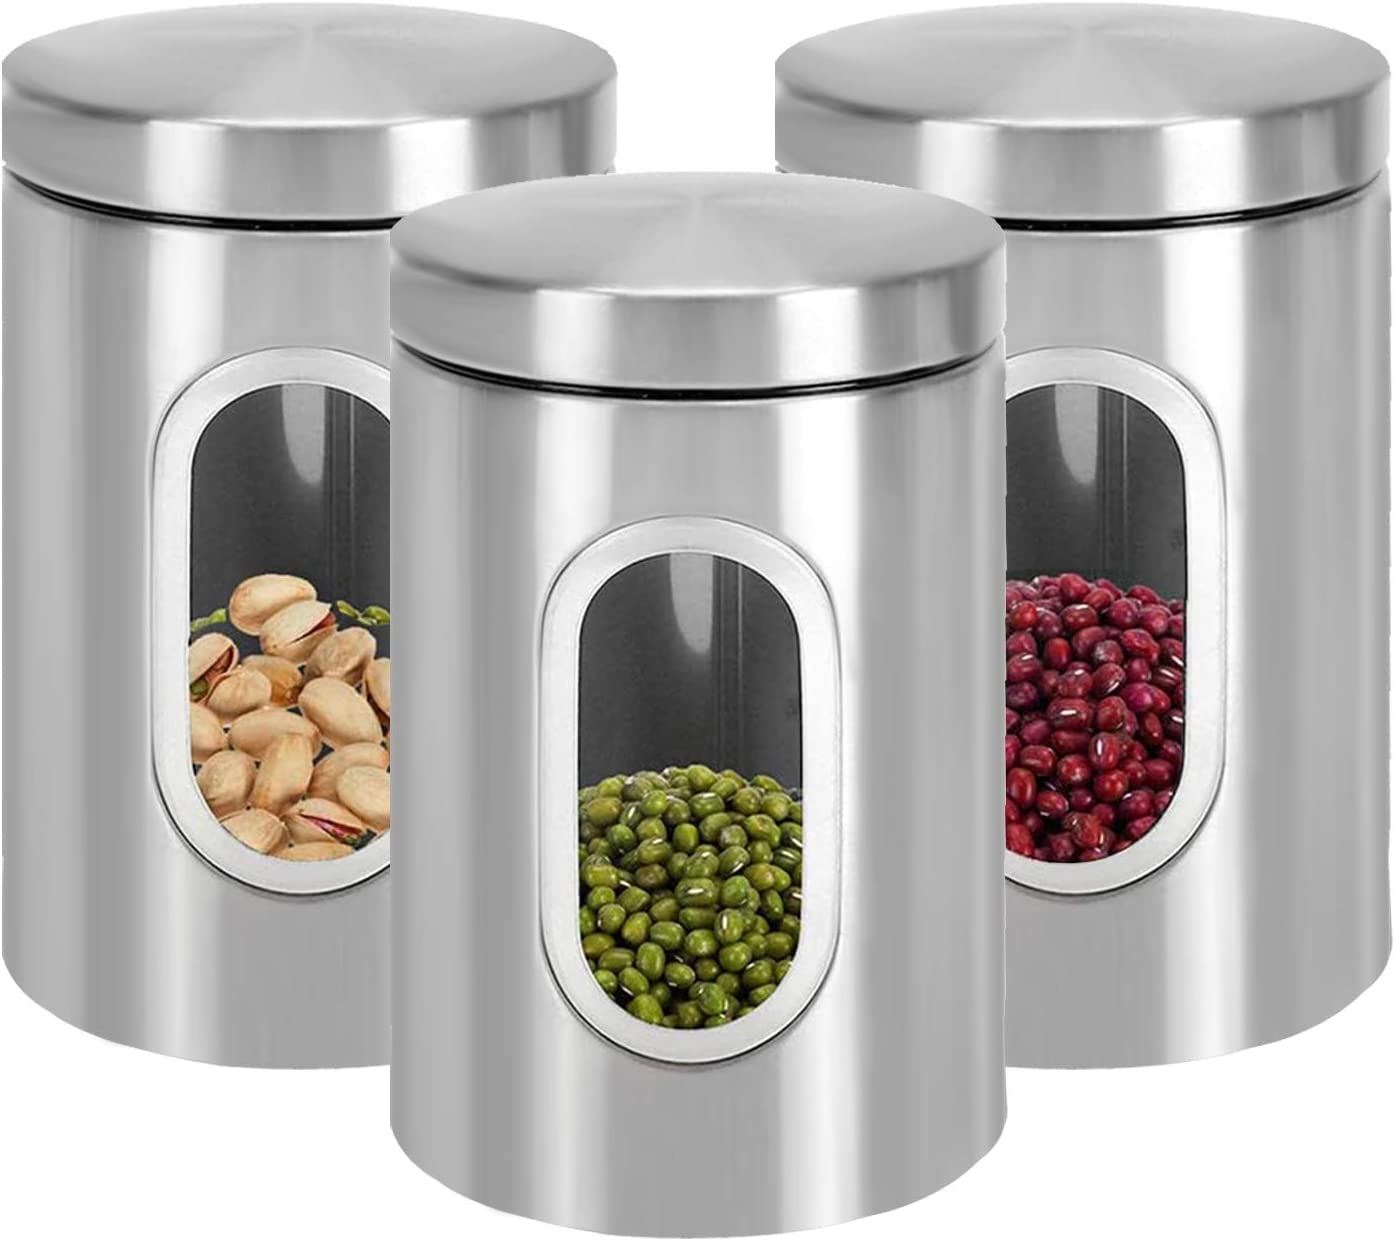 Jucoan 3 Pack Kitchen Canister Set, 6.7 x 4.3 Inch Stainless Steel Food Storage Containers with Lid and Visible Window for Dry Food Snack Beans Flour Sugar, 48 oz